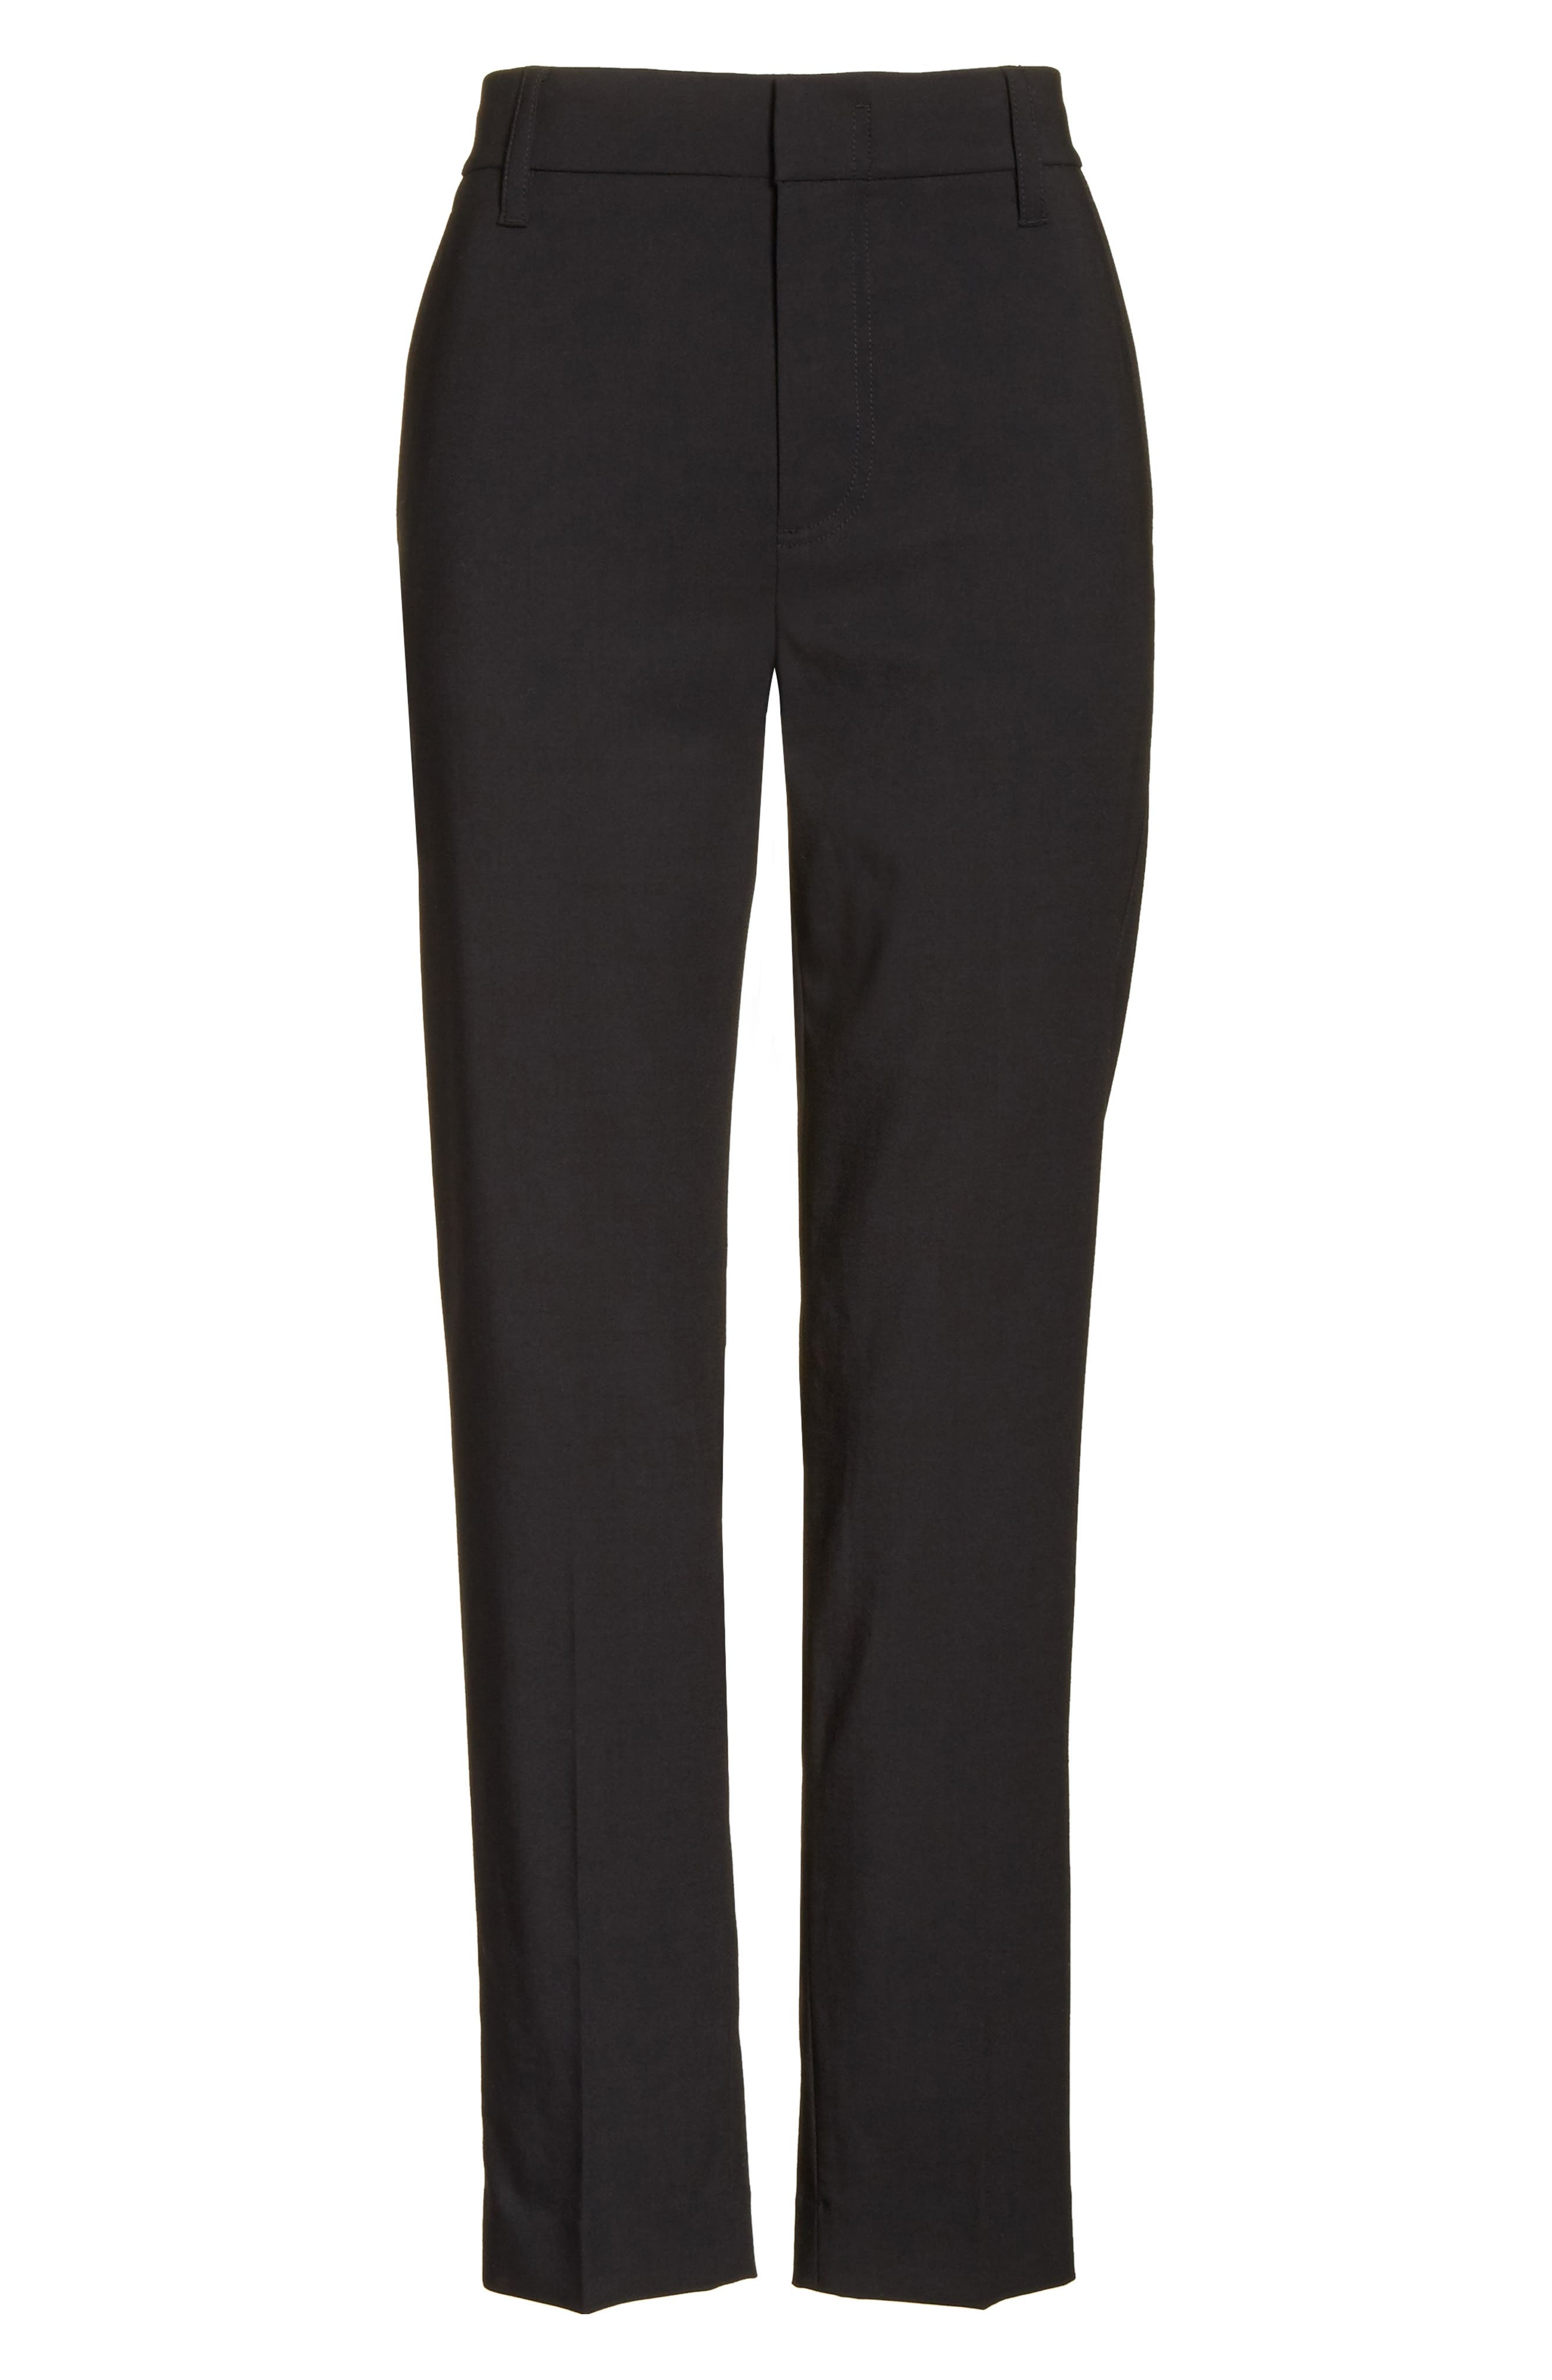 VINCE, Tapered Ankle Trousers, Alternate thumbnail 7, color, BLACK